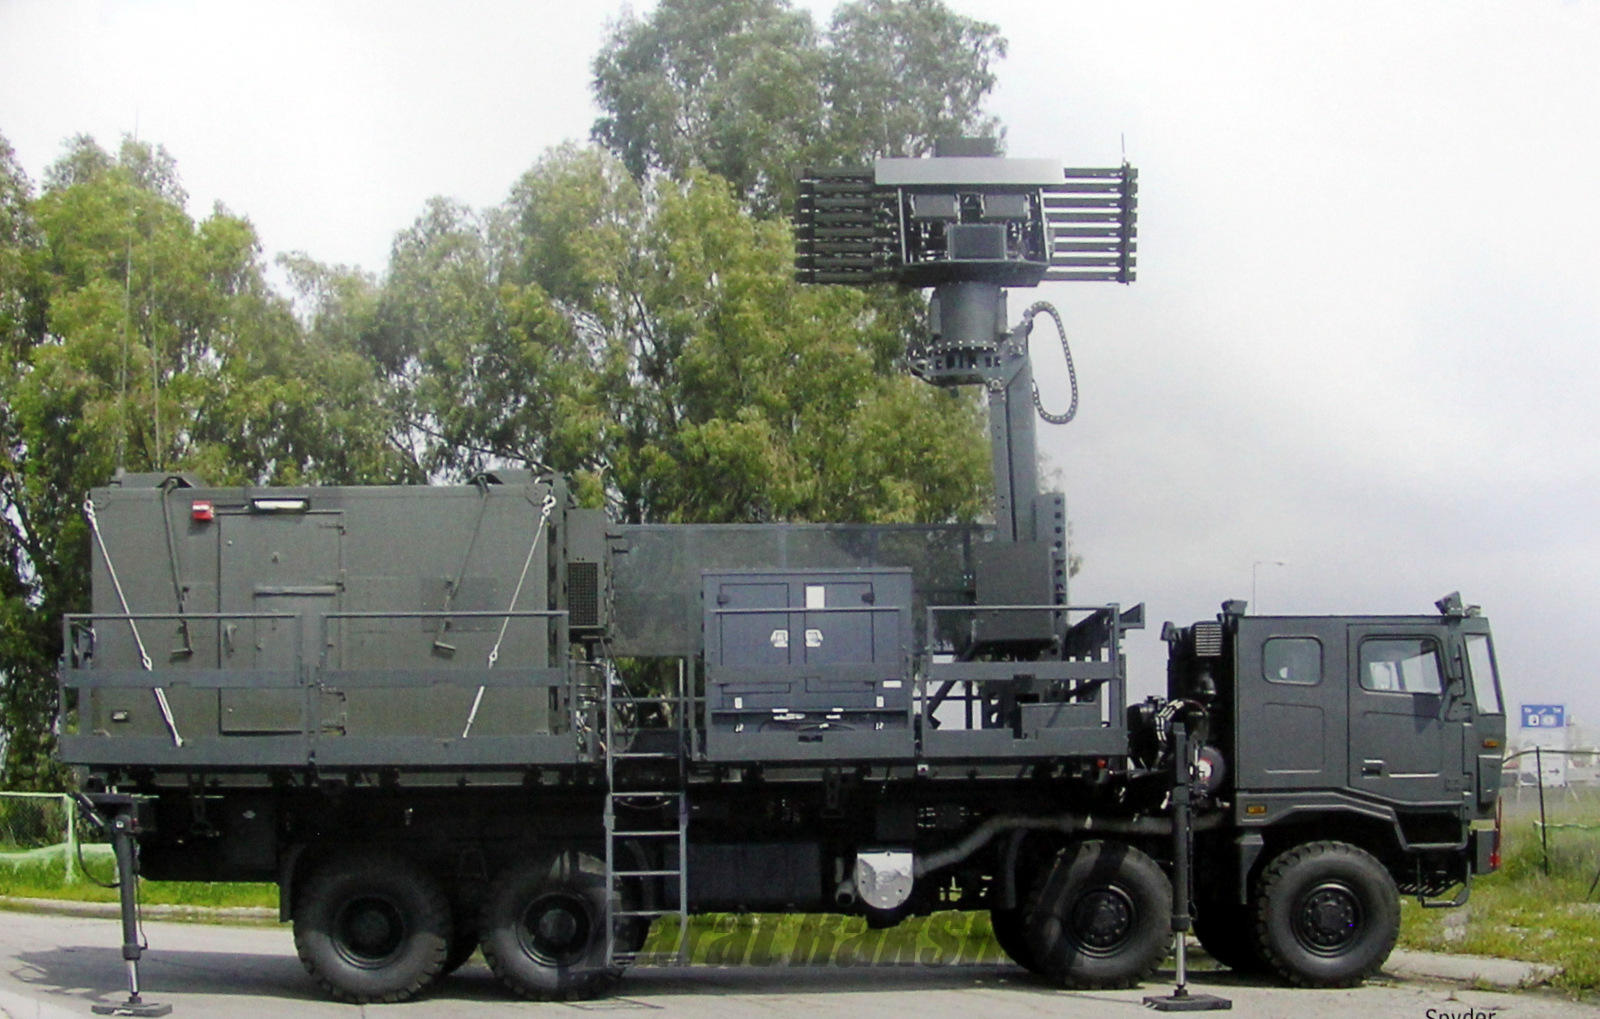 Indian Air Force SPYDER missile system radar support vehicle